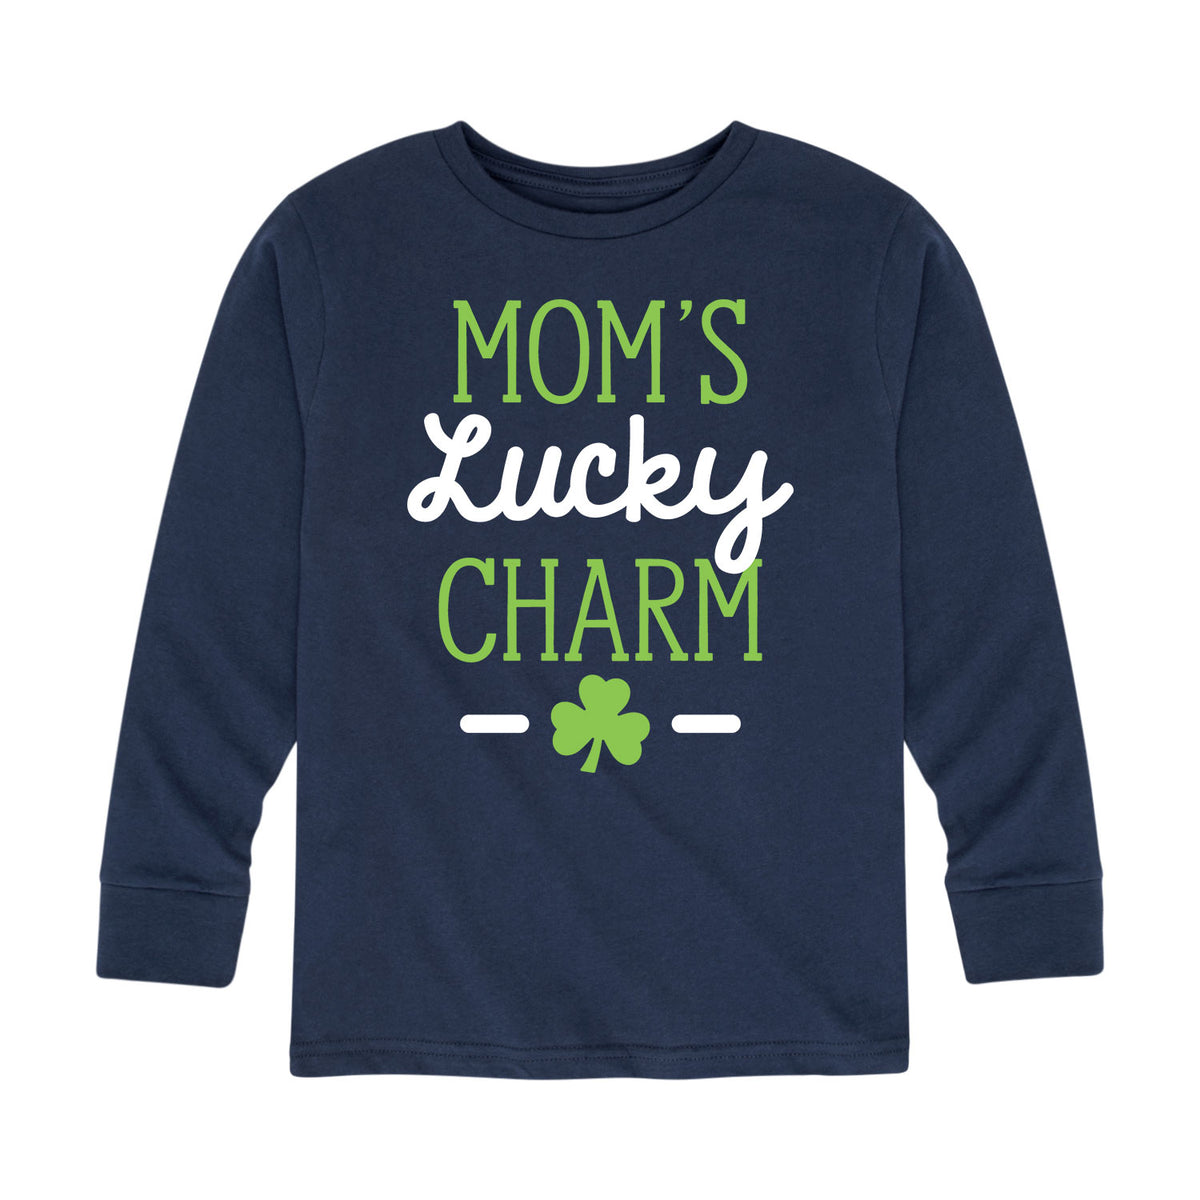 Mom's Lucky Charm - Toddler Long Sleeve T-Shirt